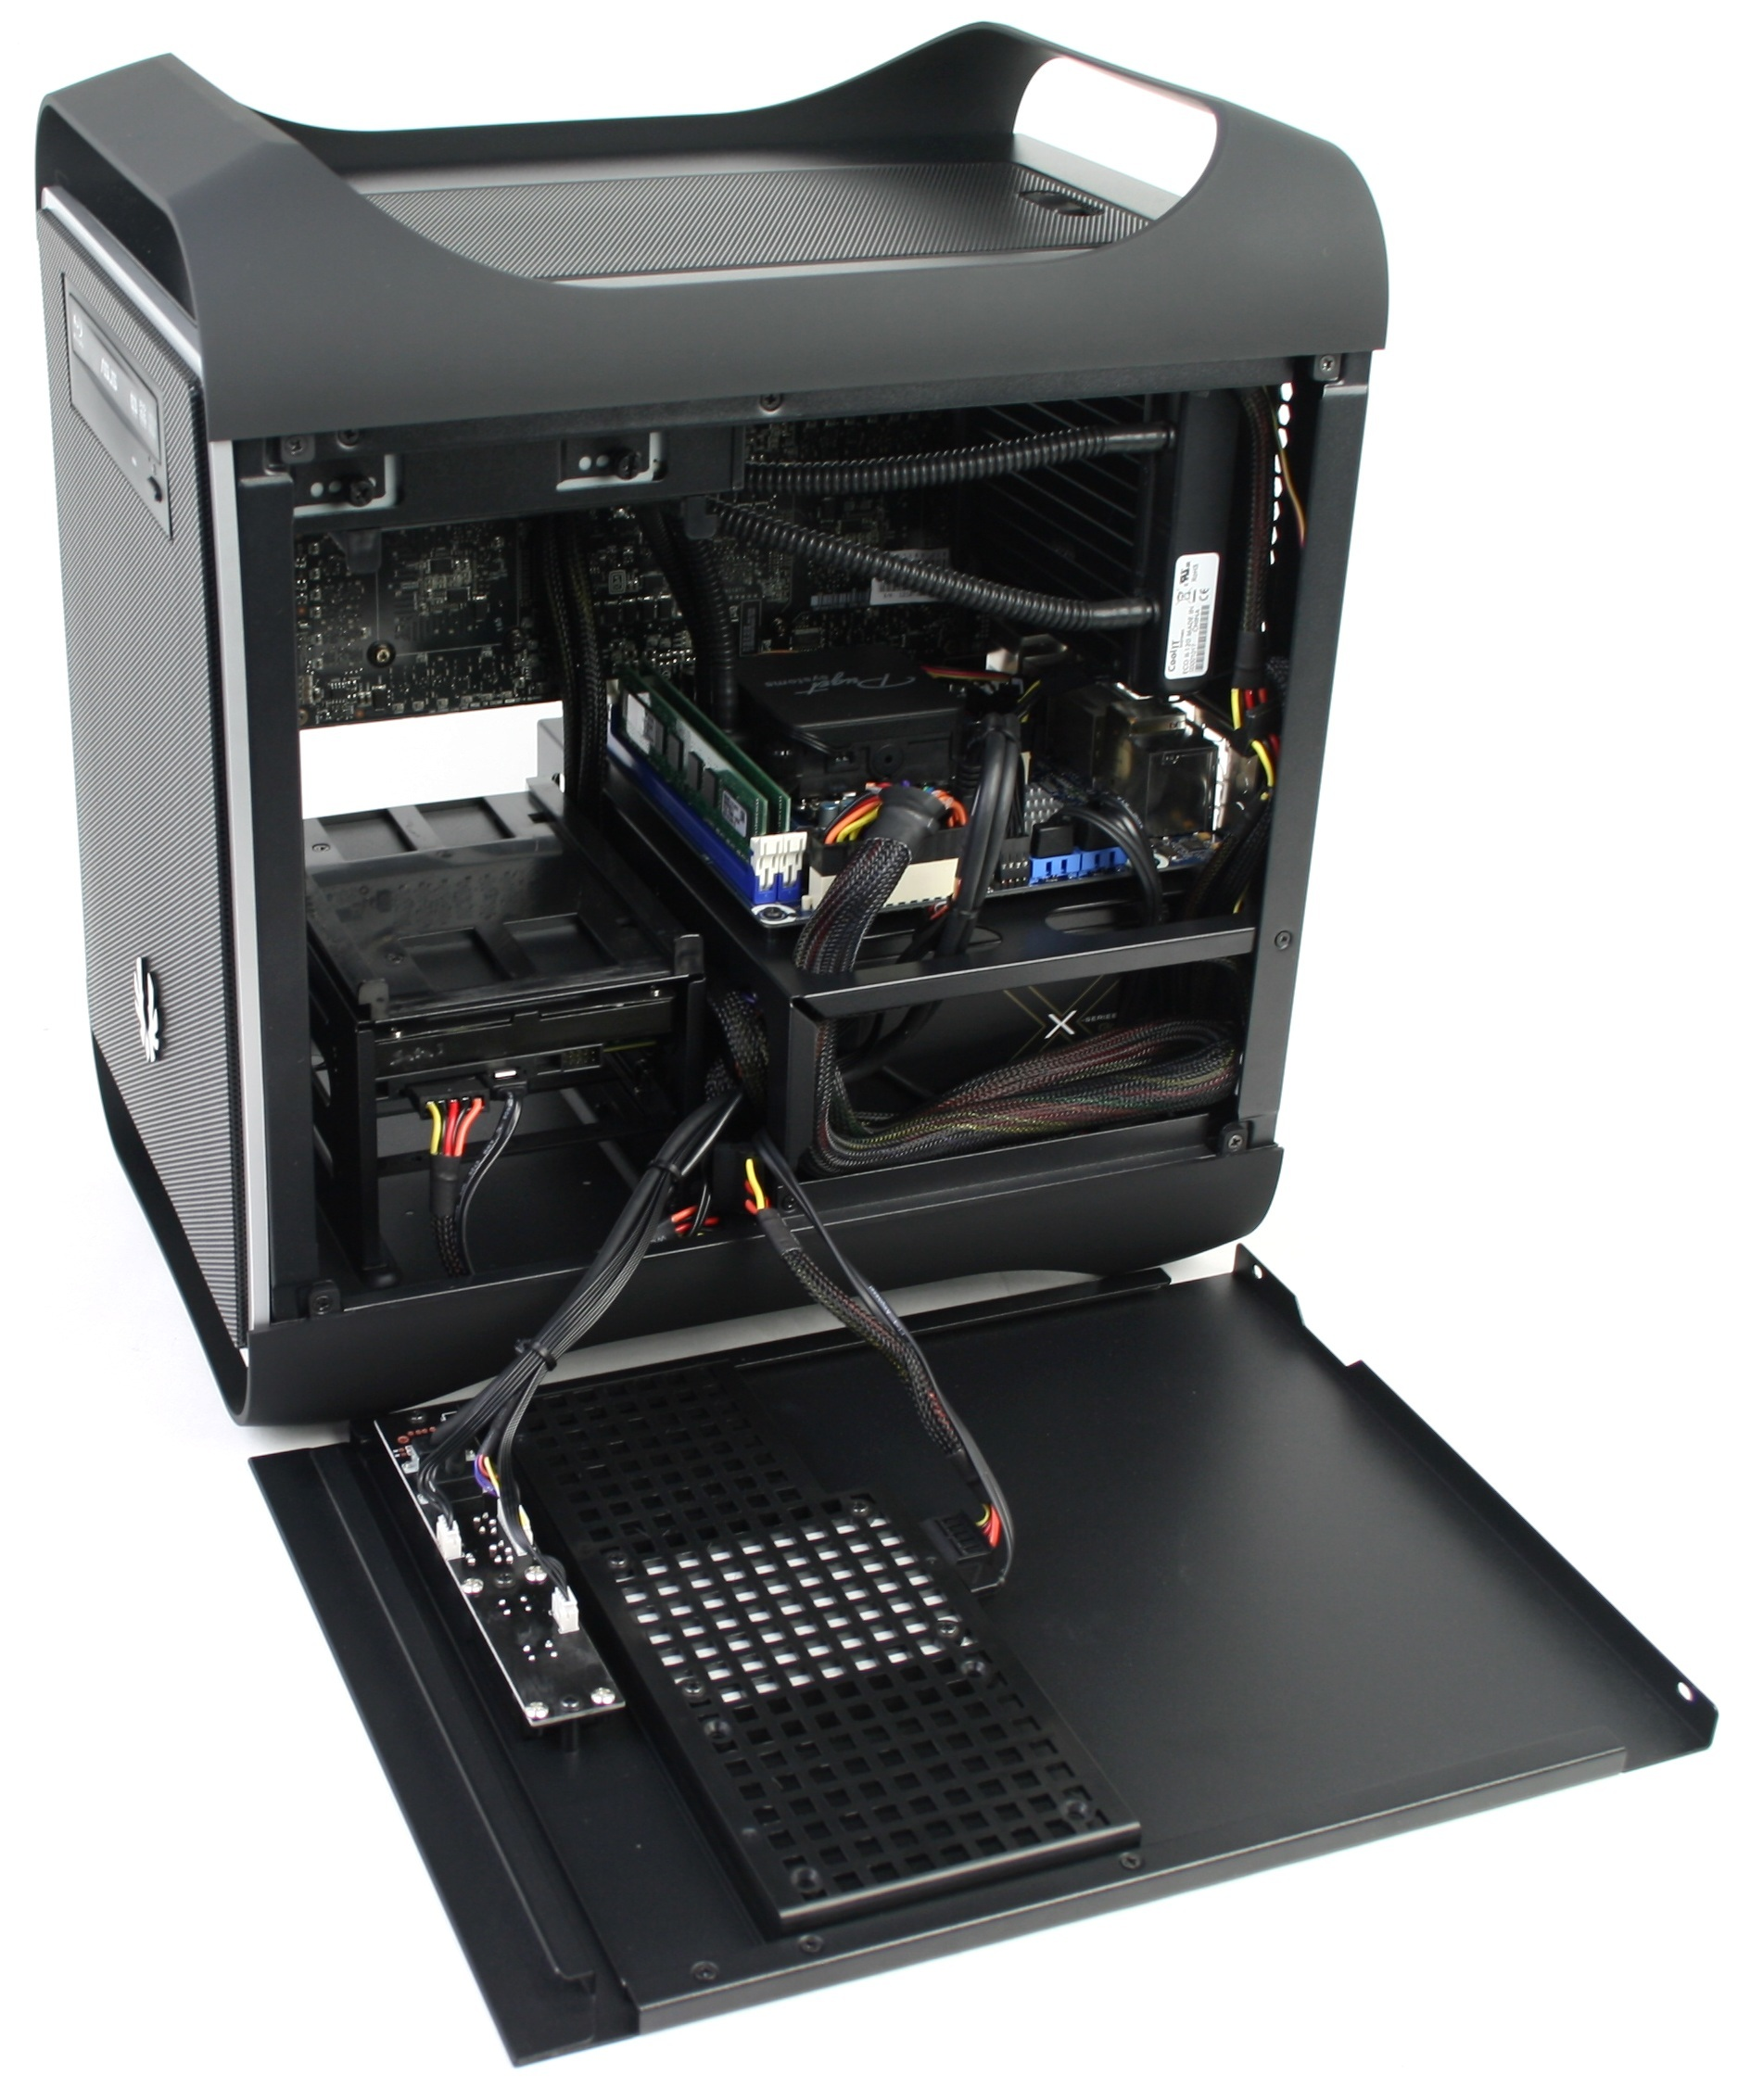 BitFenix Prodigy Assembled Motherboard and CPU Cooler Left Side